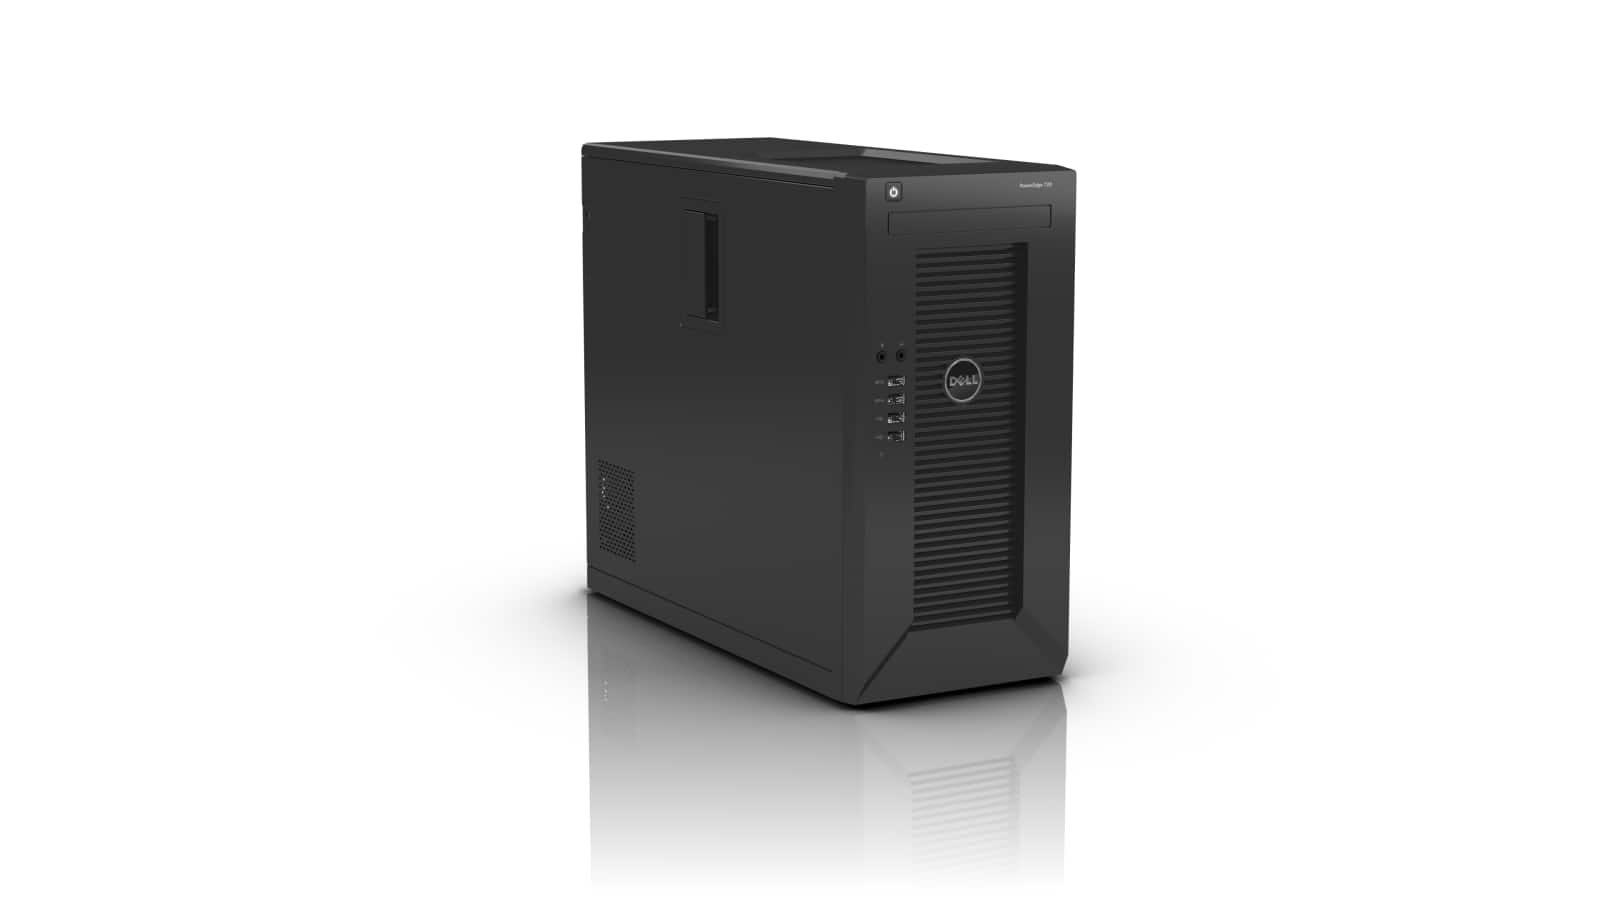 Dell PowerEdge T20 Intel Haswell Pentium G3220 3GHz Server w/ 4GB Memory and 500GB HDD $249 + Free Shipping